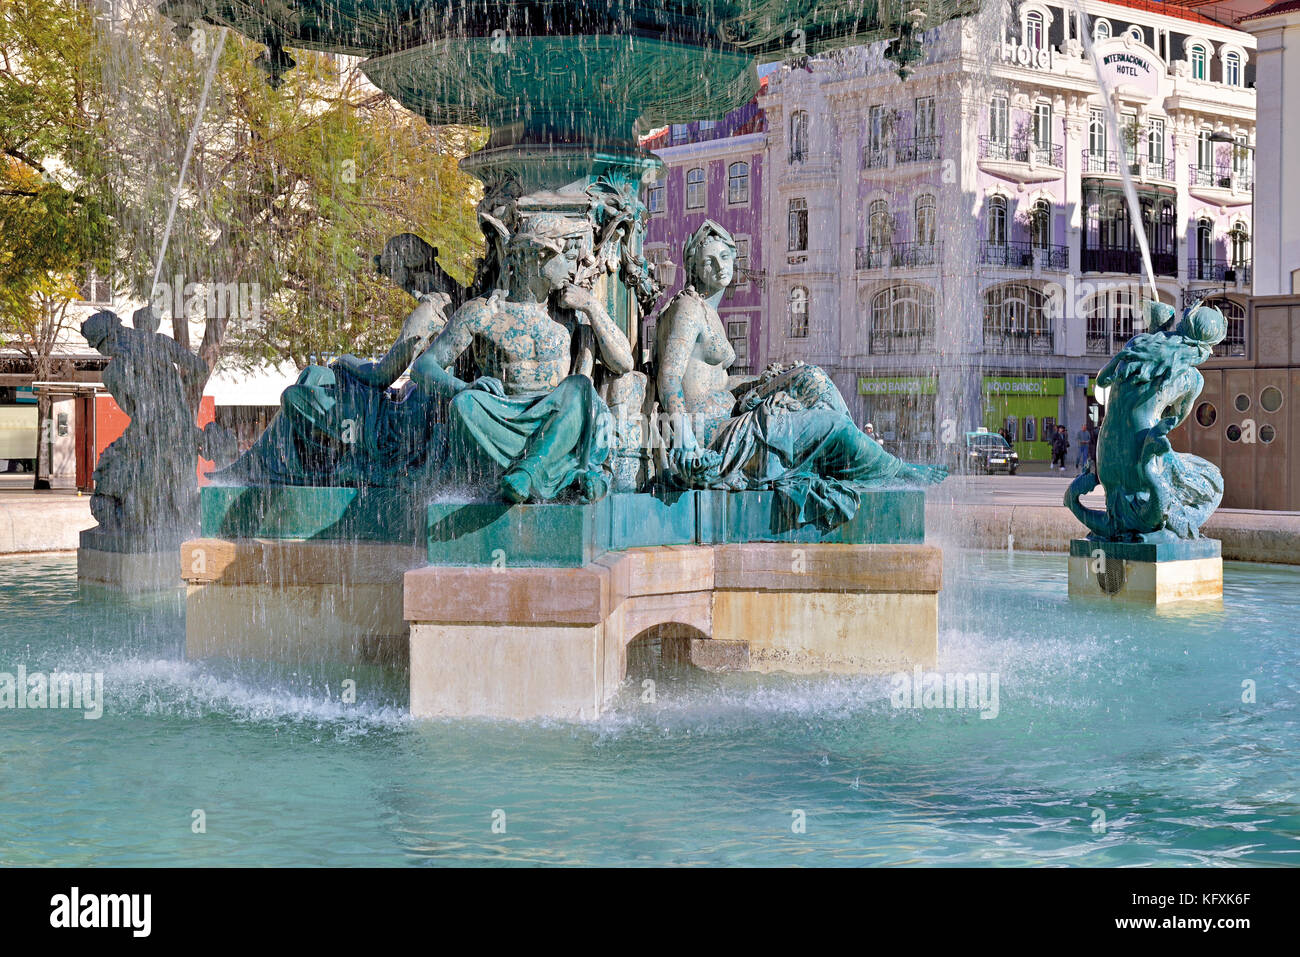 Fontaine en bronze avec mytholoical les figures dans le centre-ville de Lisbonne Photo Stock